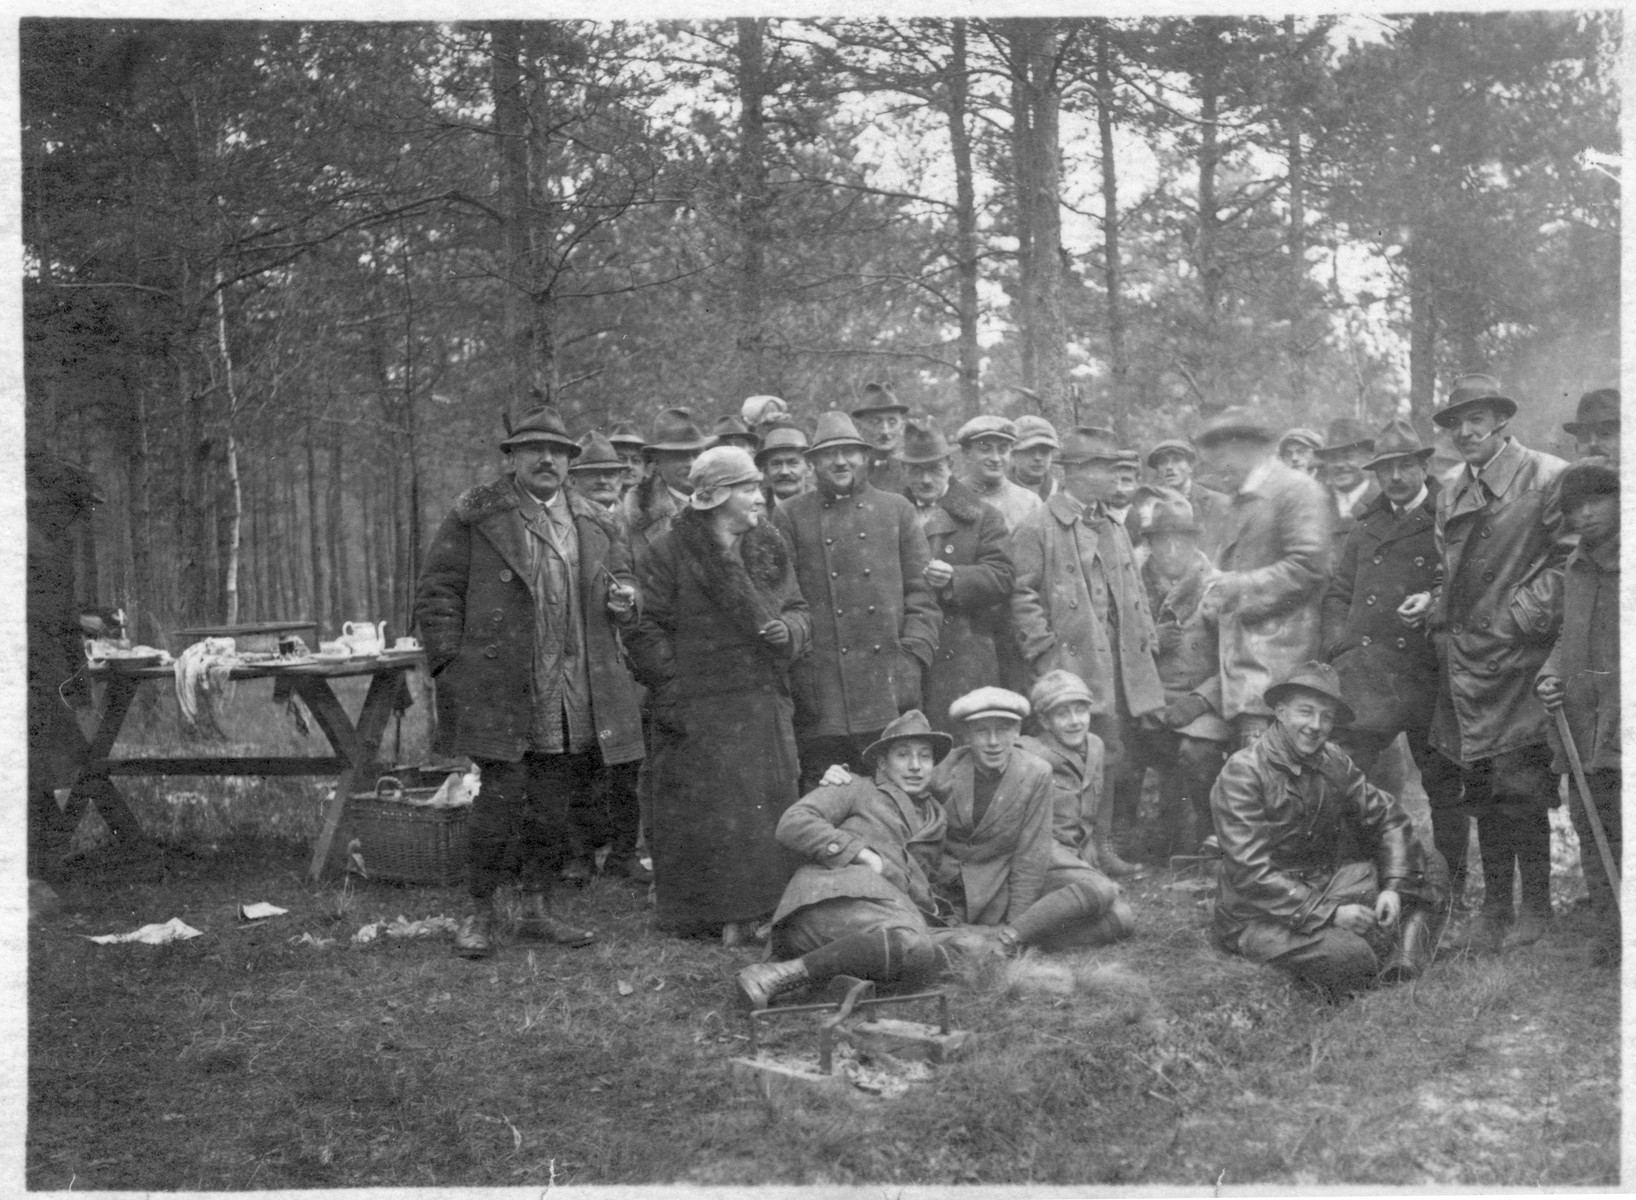 The Kraus family and their friends gather during an outing in the woods in prewar Czechoslovakia.  Among those pictured are Julius Kraus and his wife and their son Karel.